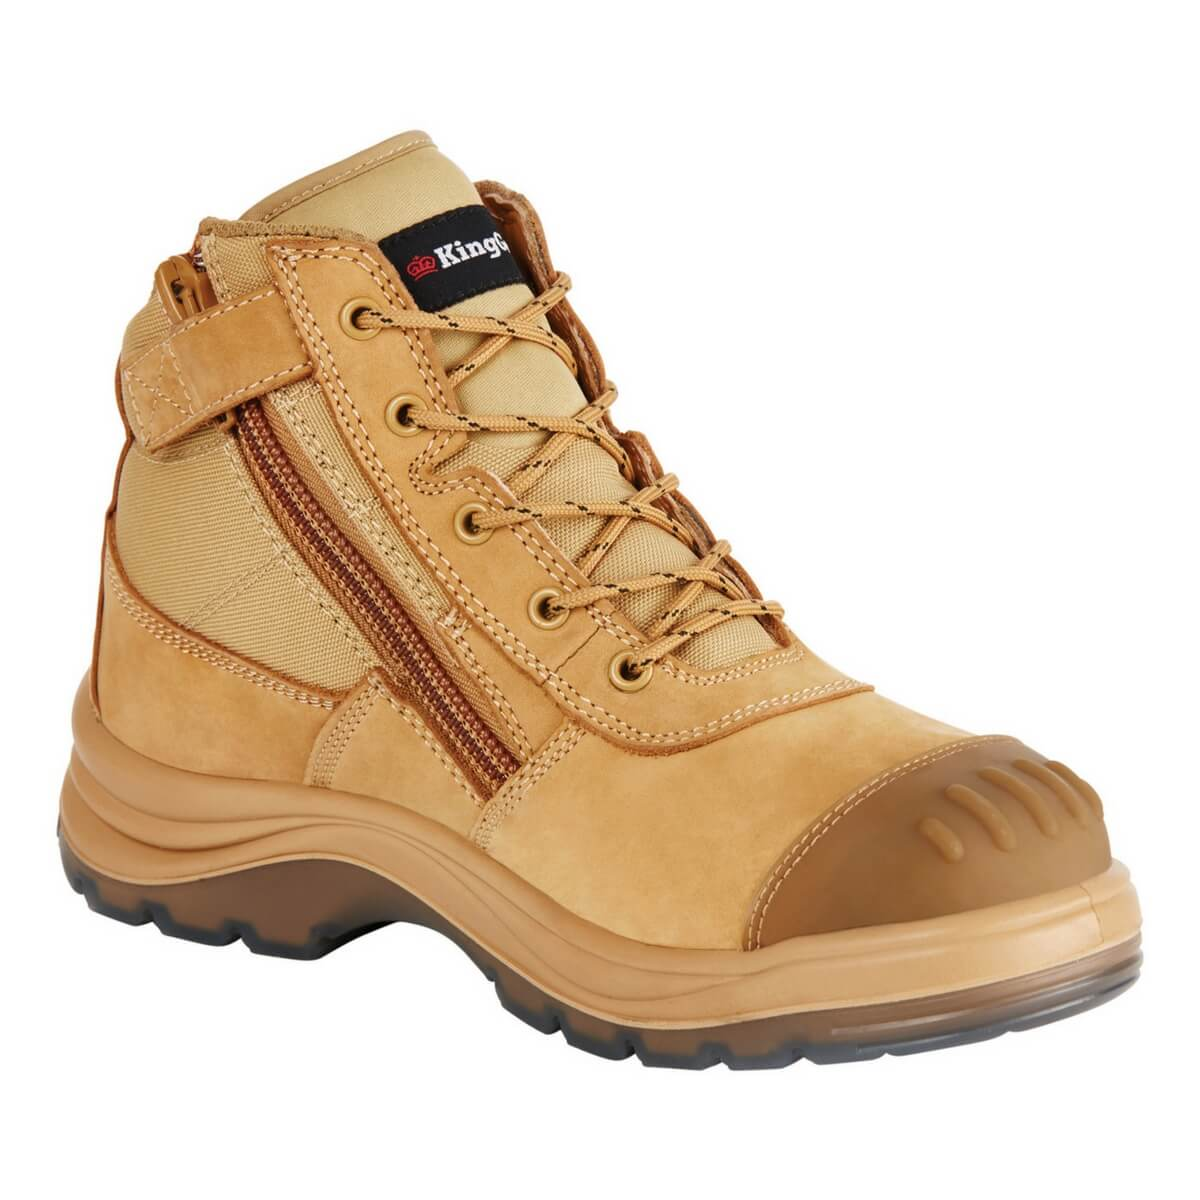 c53144014ff KingGee Tradie Zip Side Safety Boot - Wheat